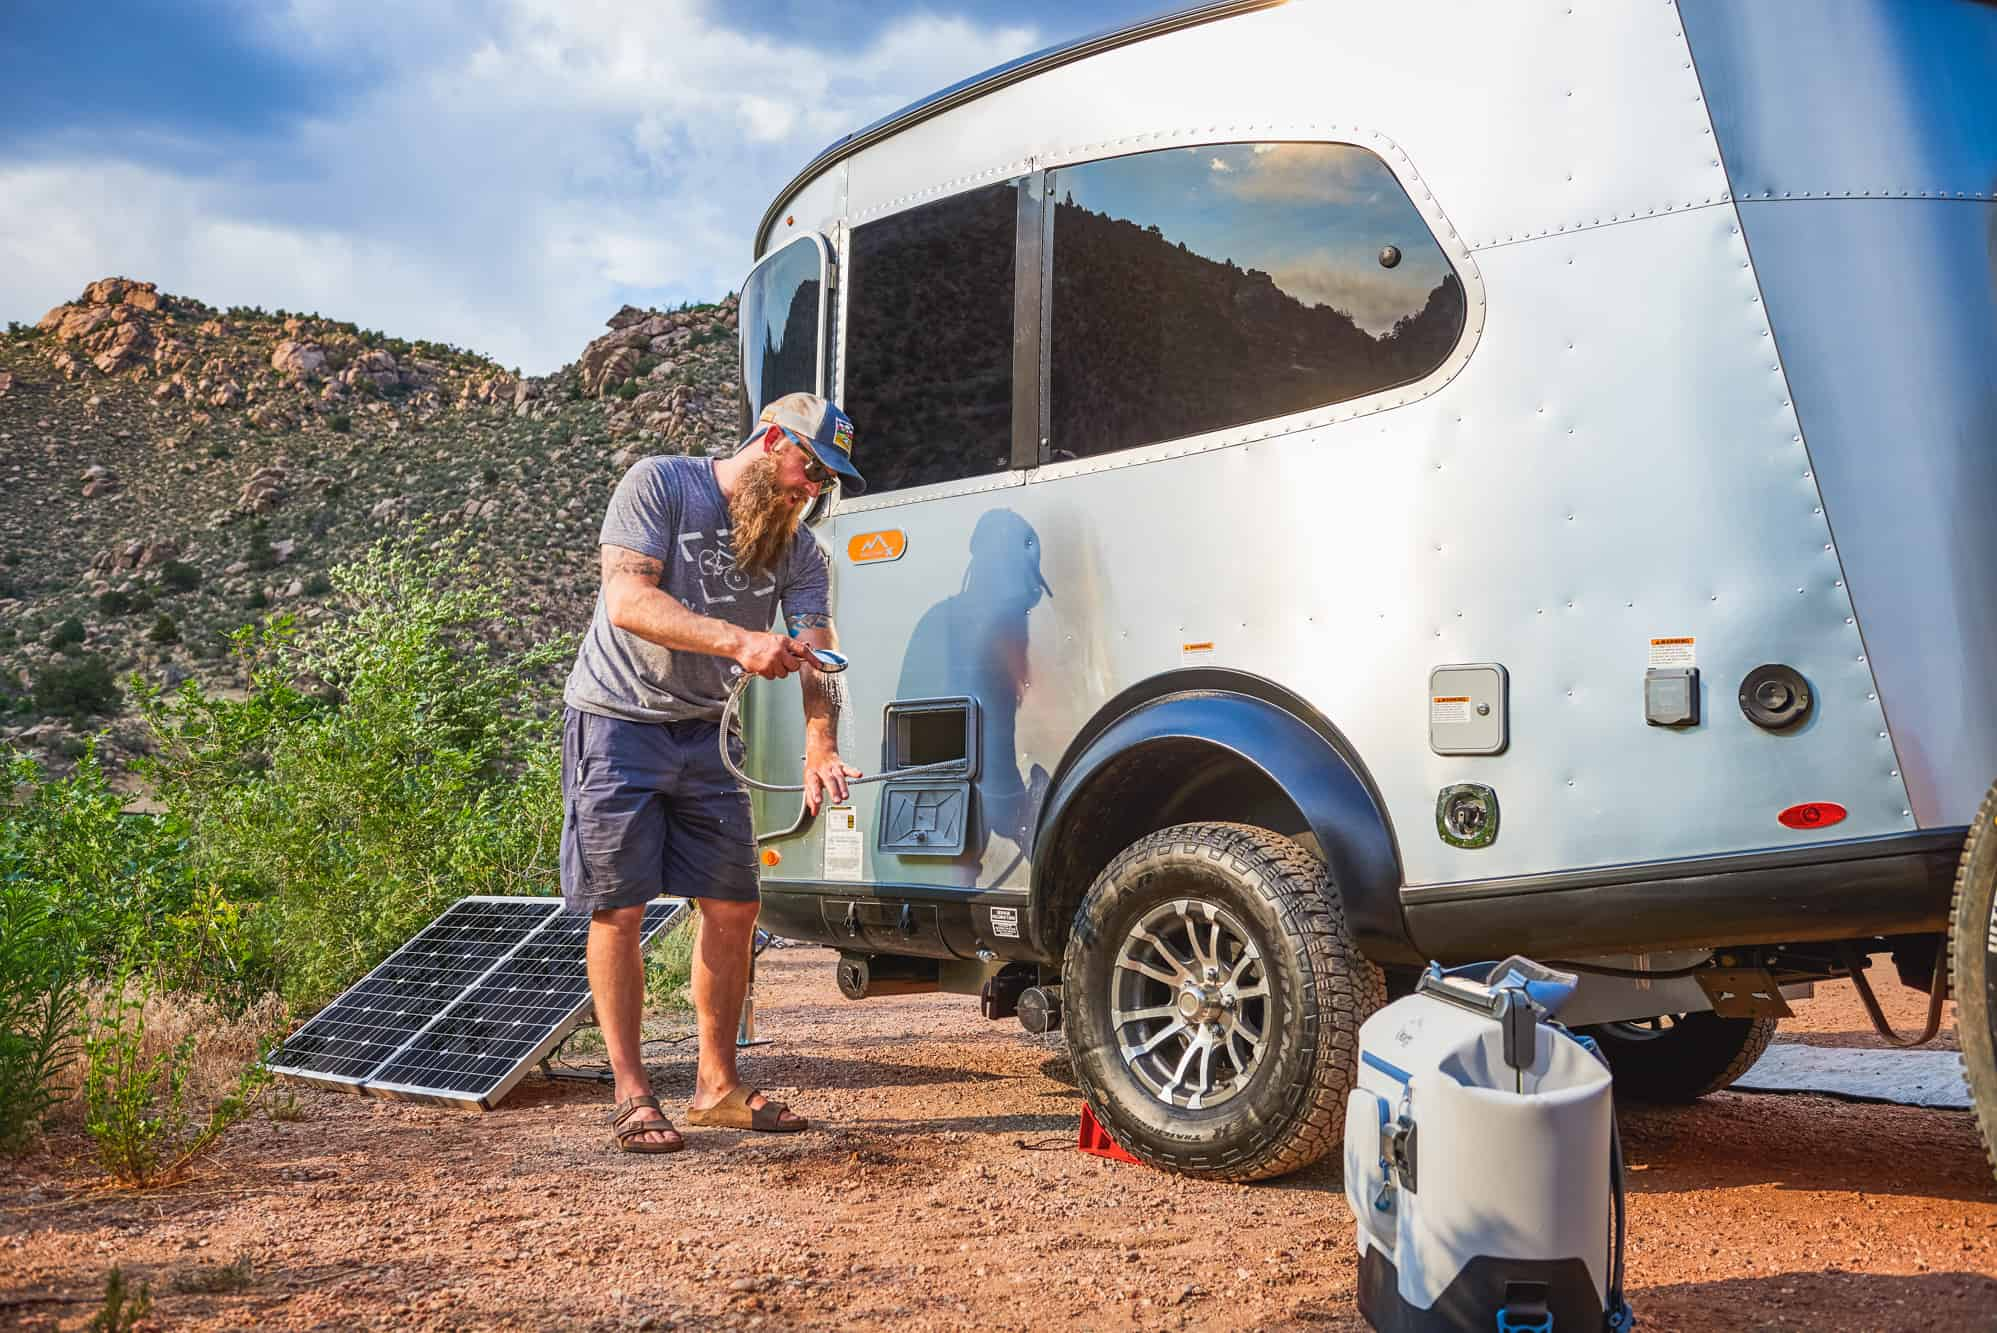 Airstream Basecamp X Off-Road Camper